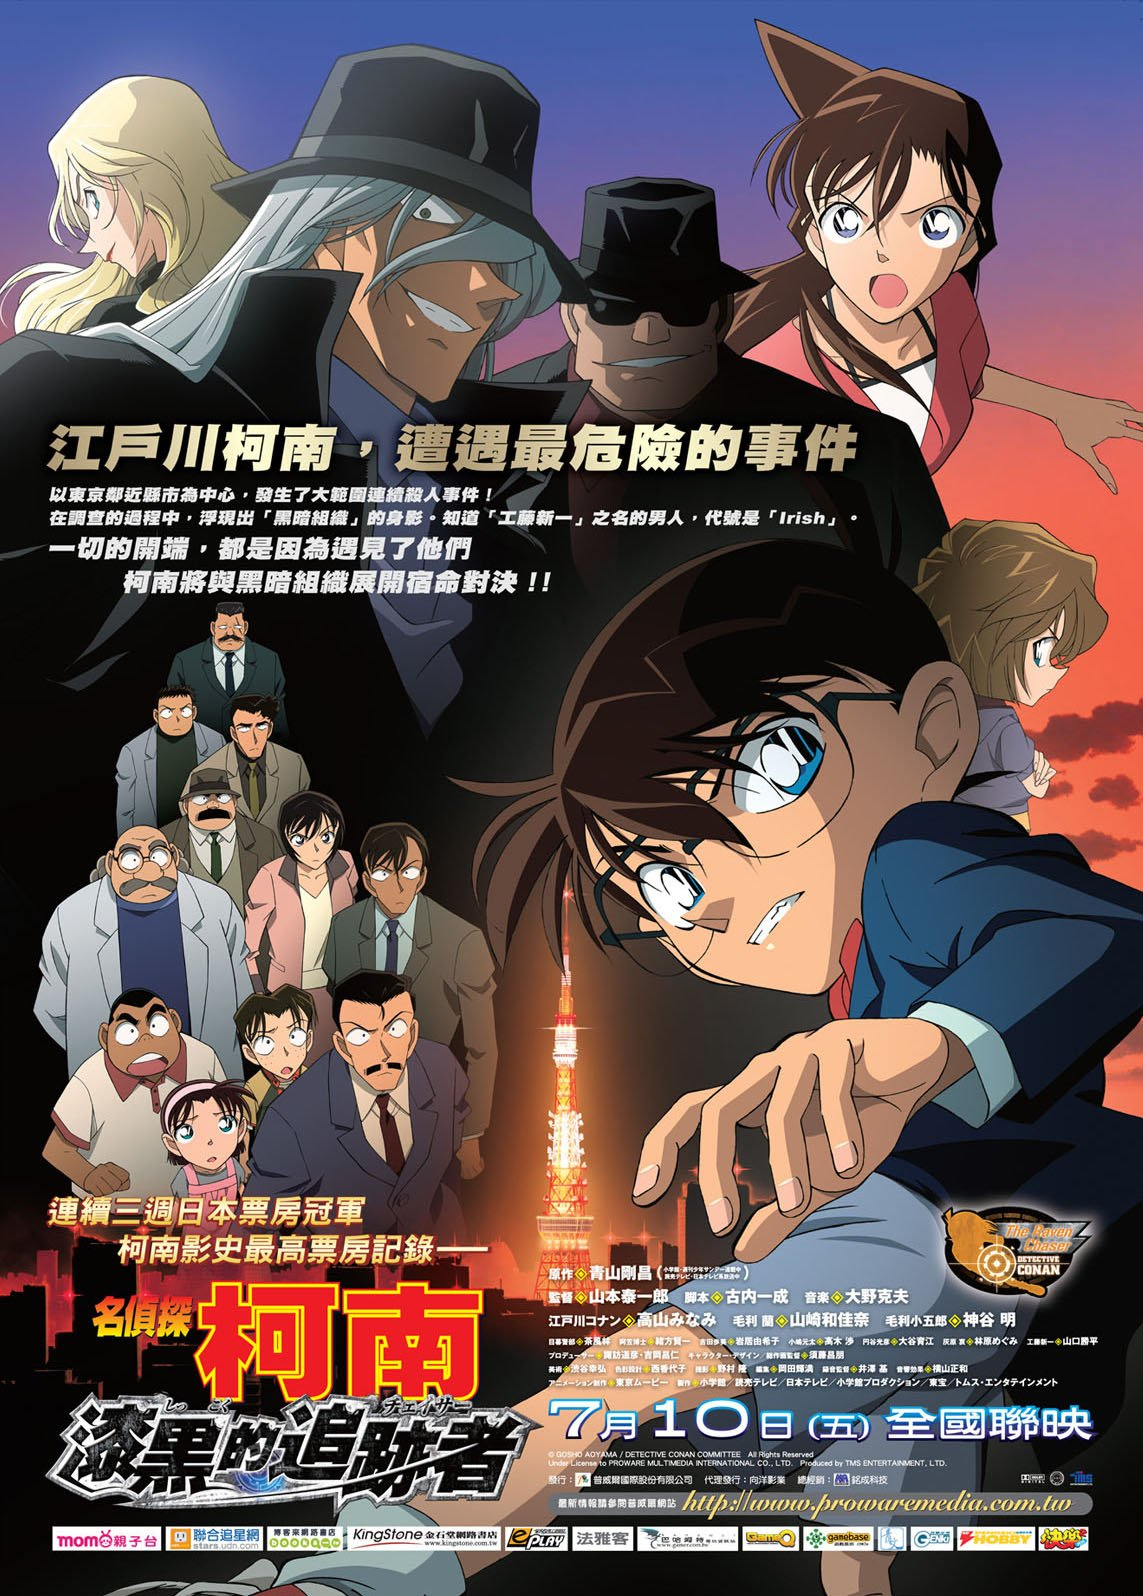 Download Detective Conan The Movie : download, detective, conan, movie, Download, Detective, Conan, Movie, Chasepowerup